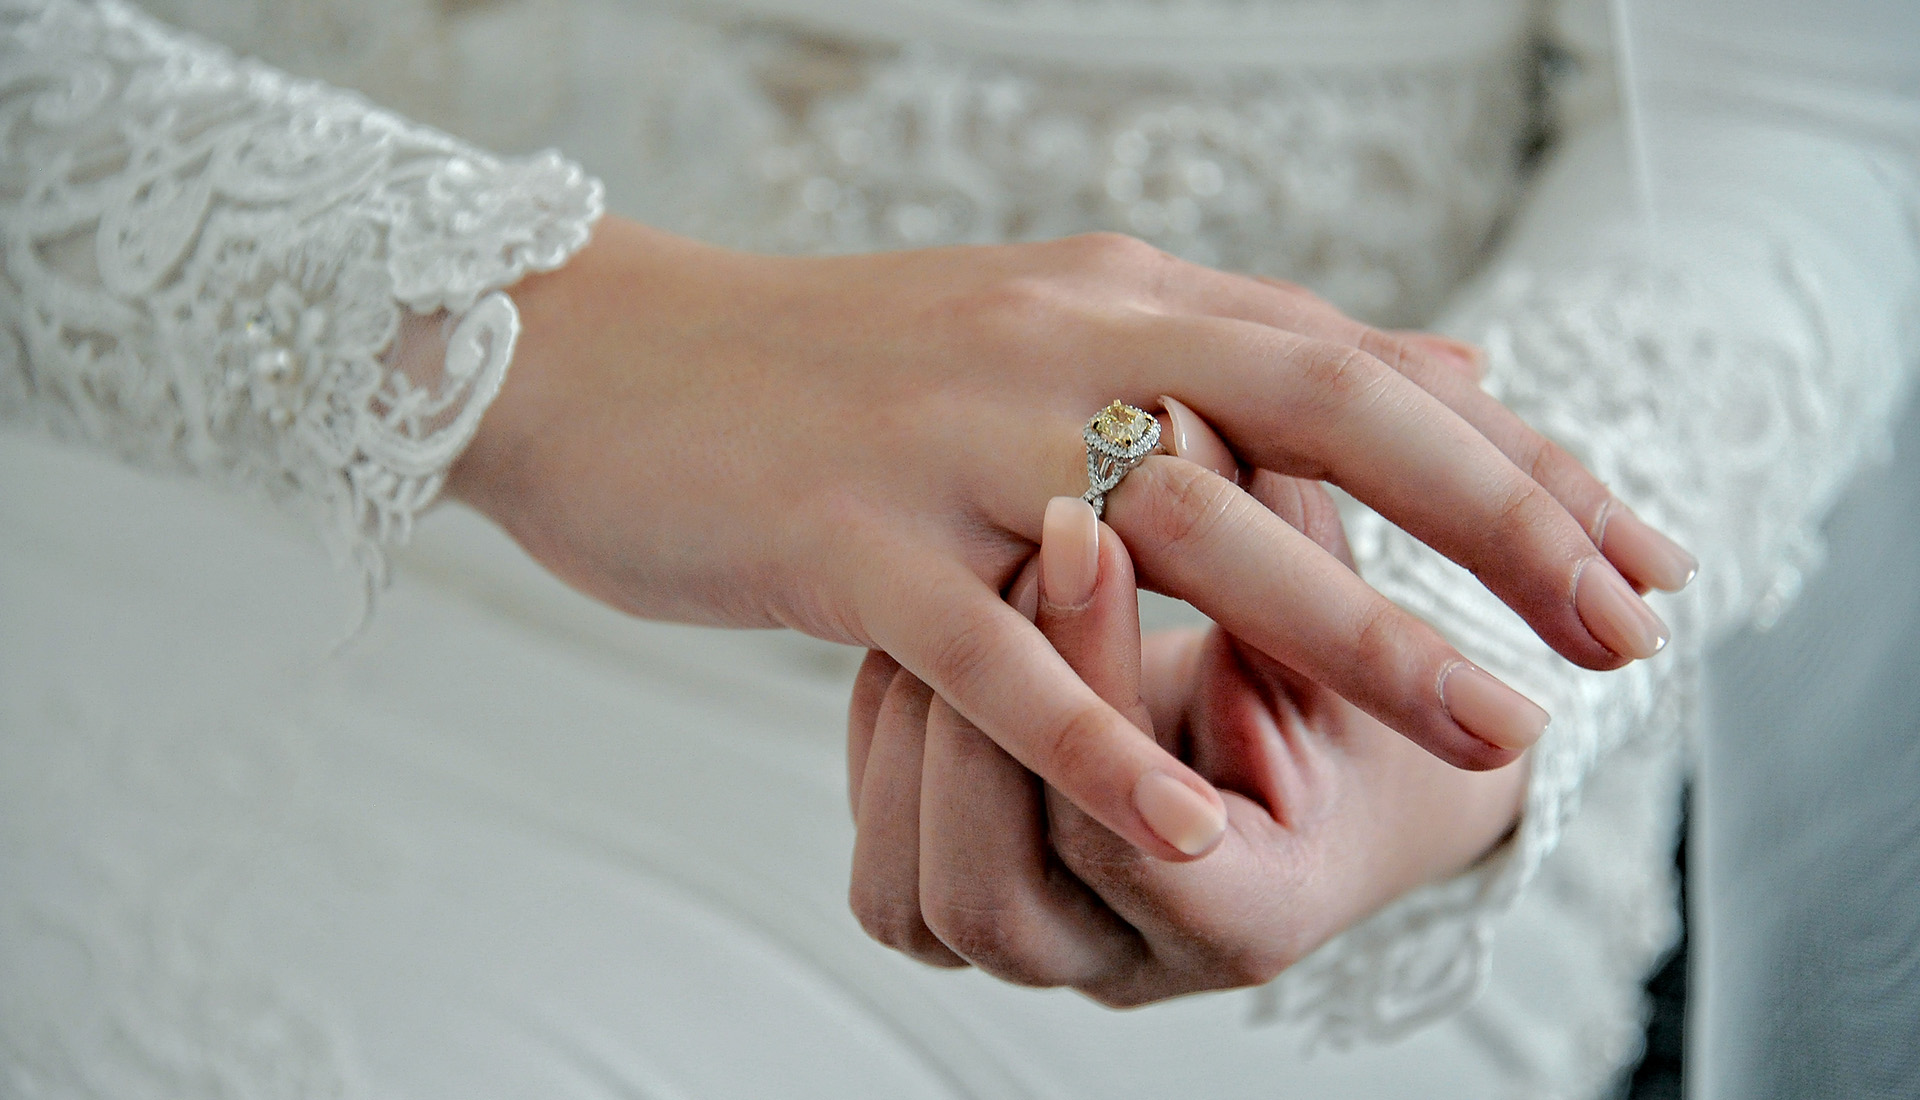 Ring symbolizes love for life!